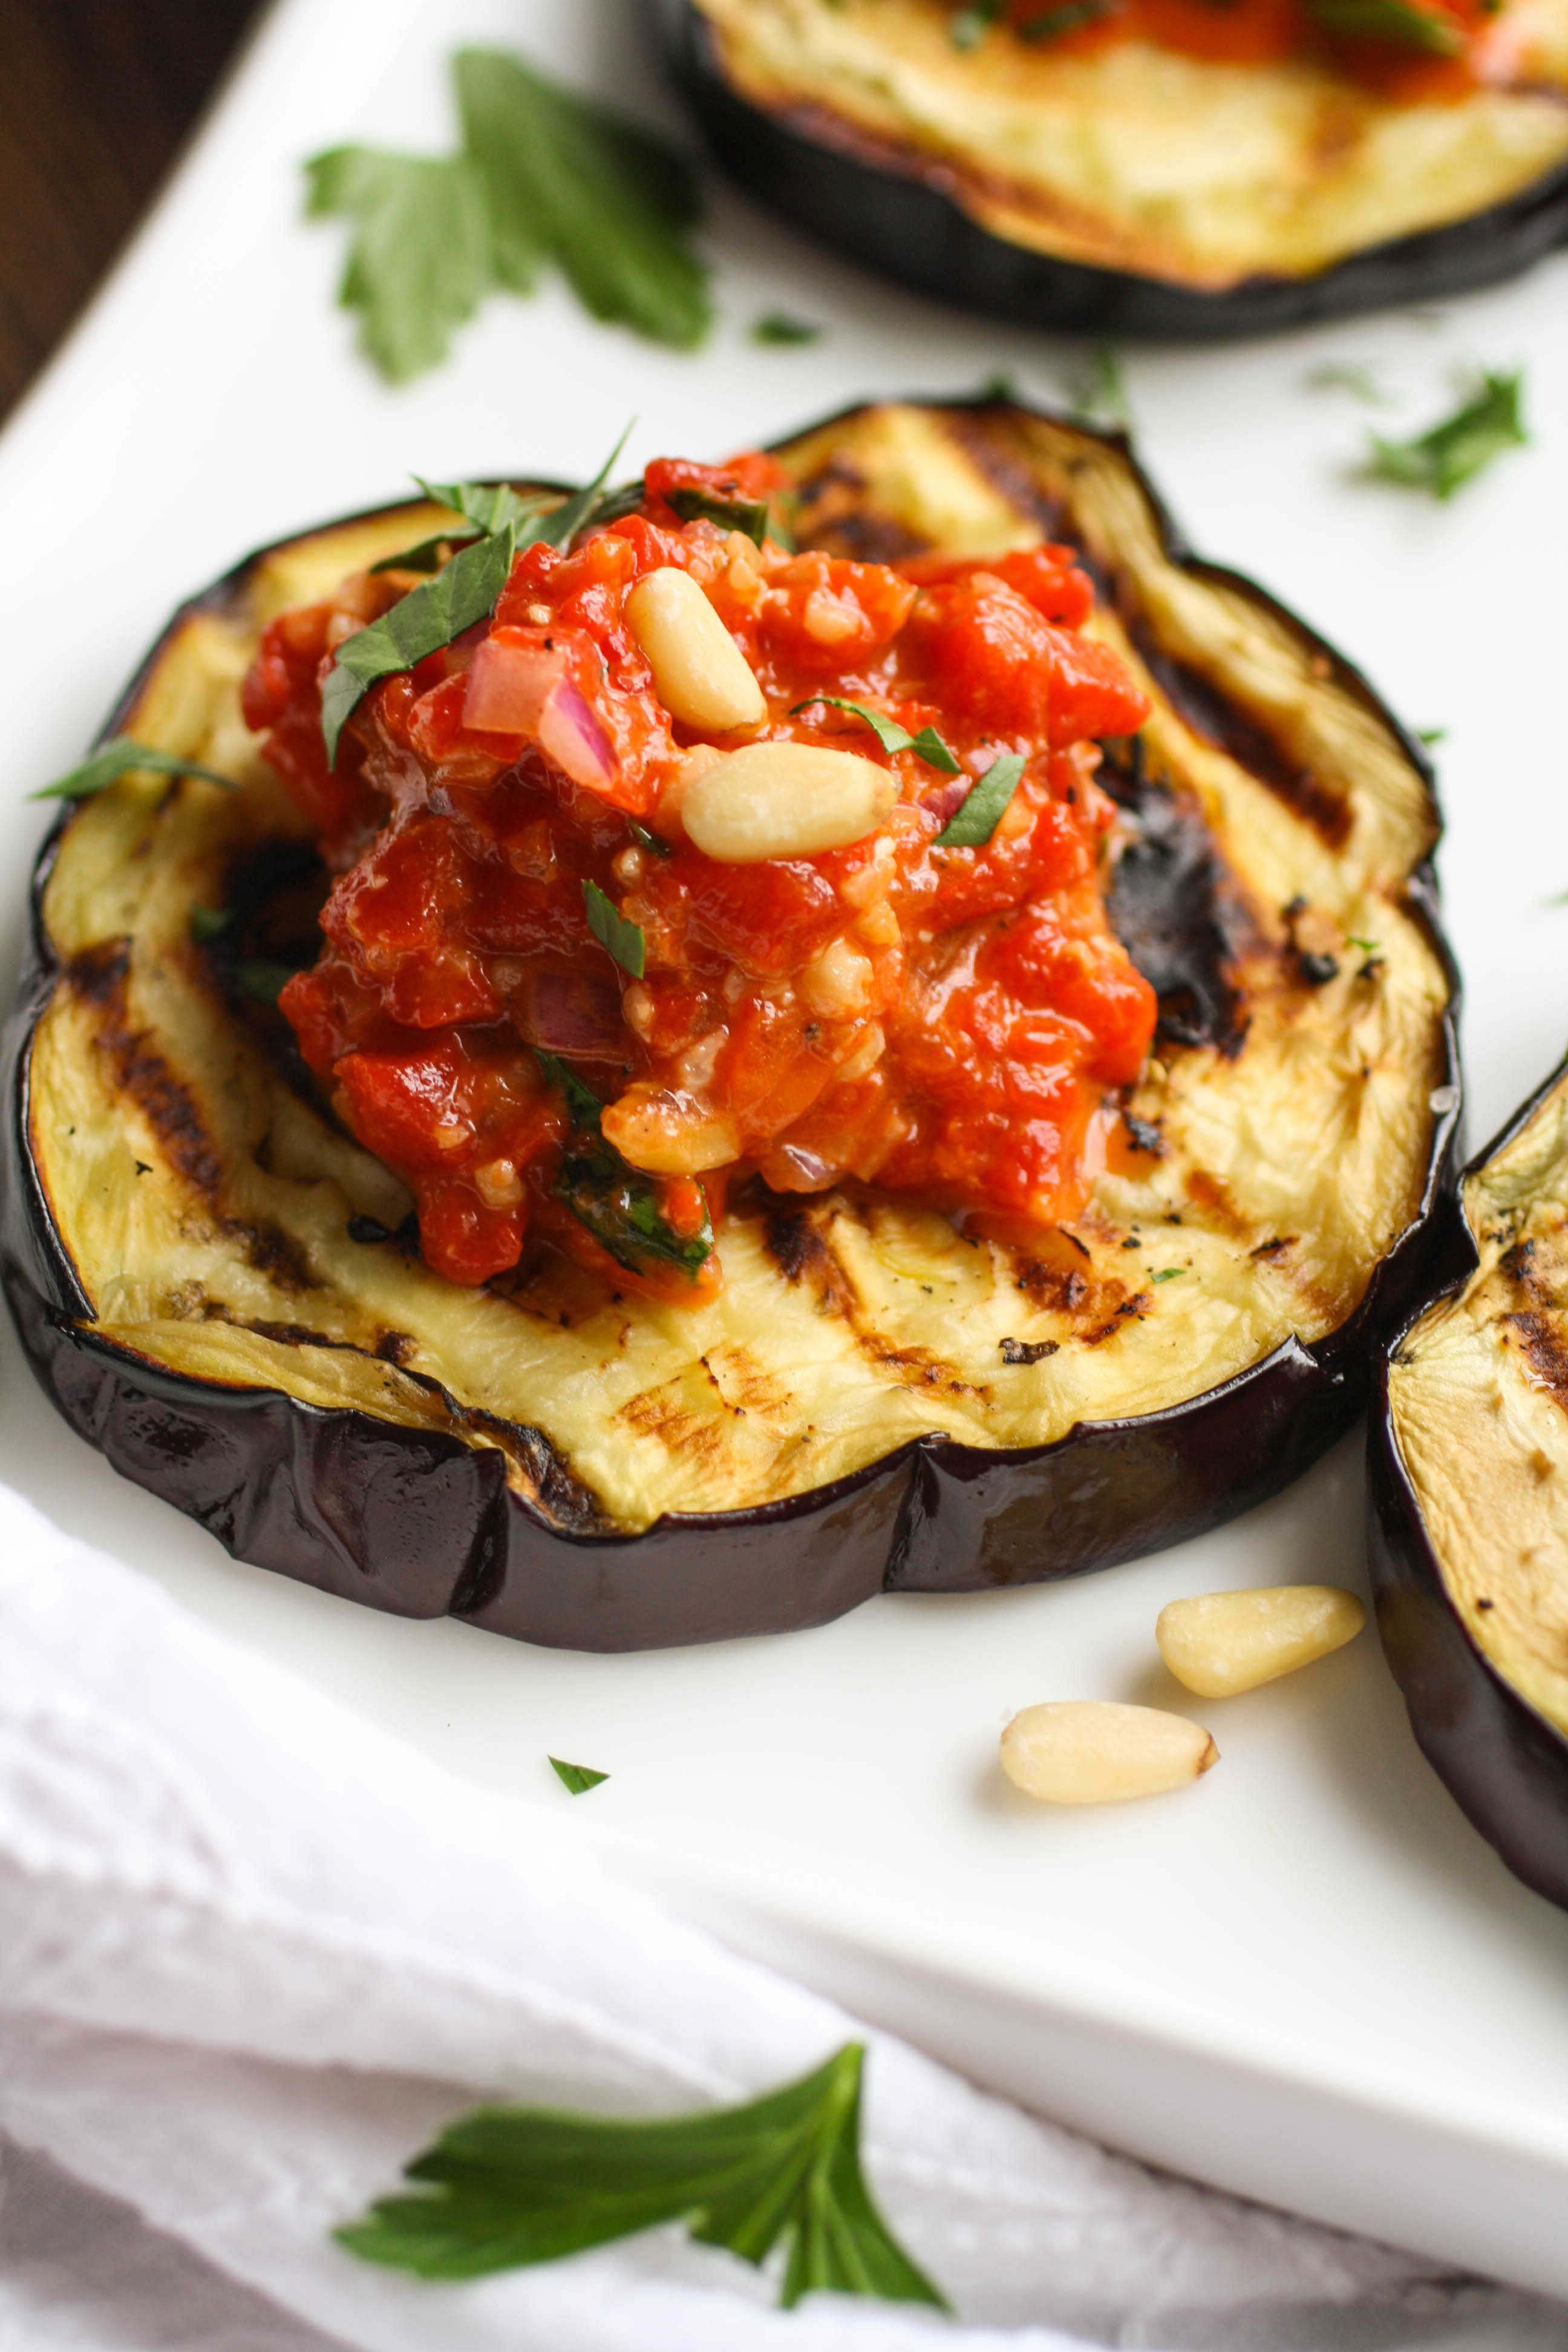 Grilled Eggplant with Roasted Red Pepper Tapenade is a great summer dish. You'll love how easy it is to make, and how delicious it is!